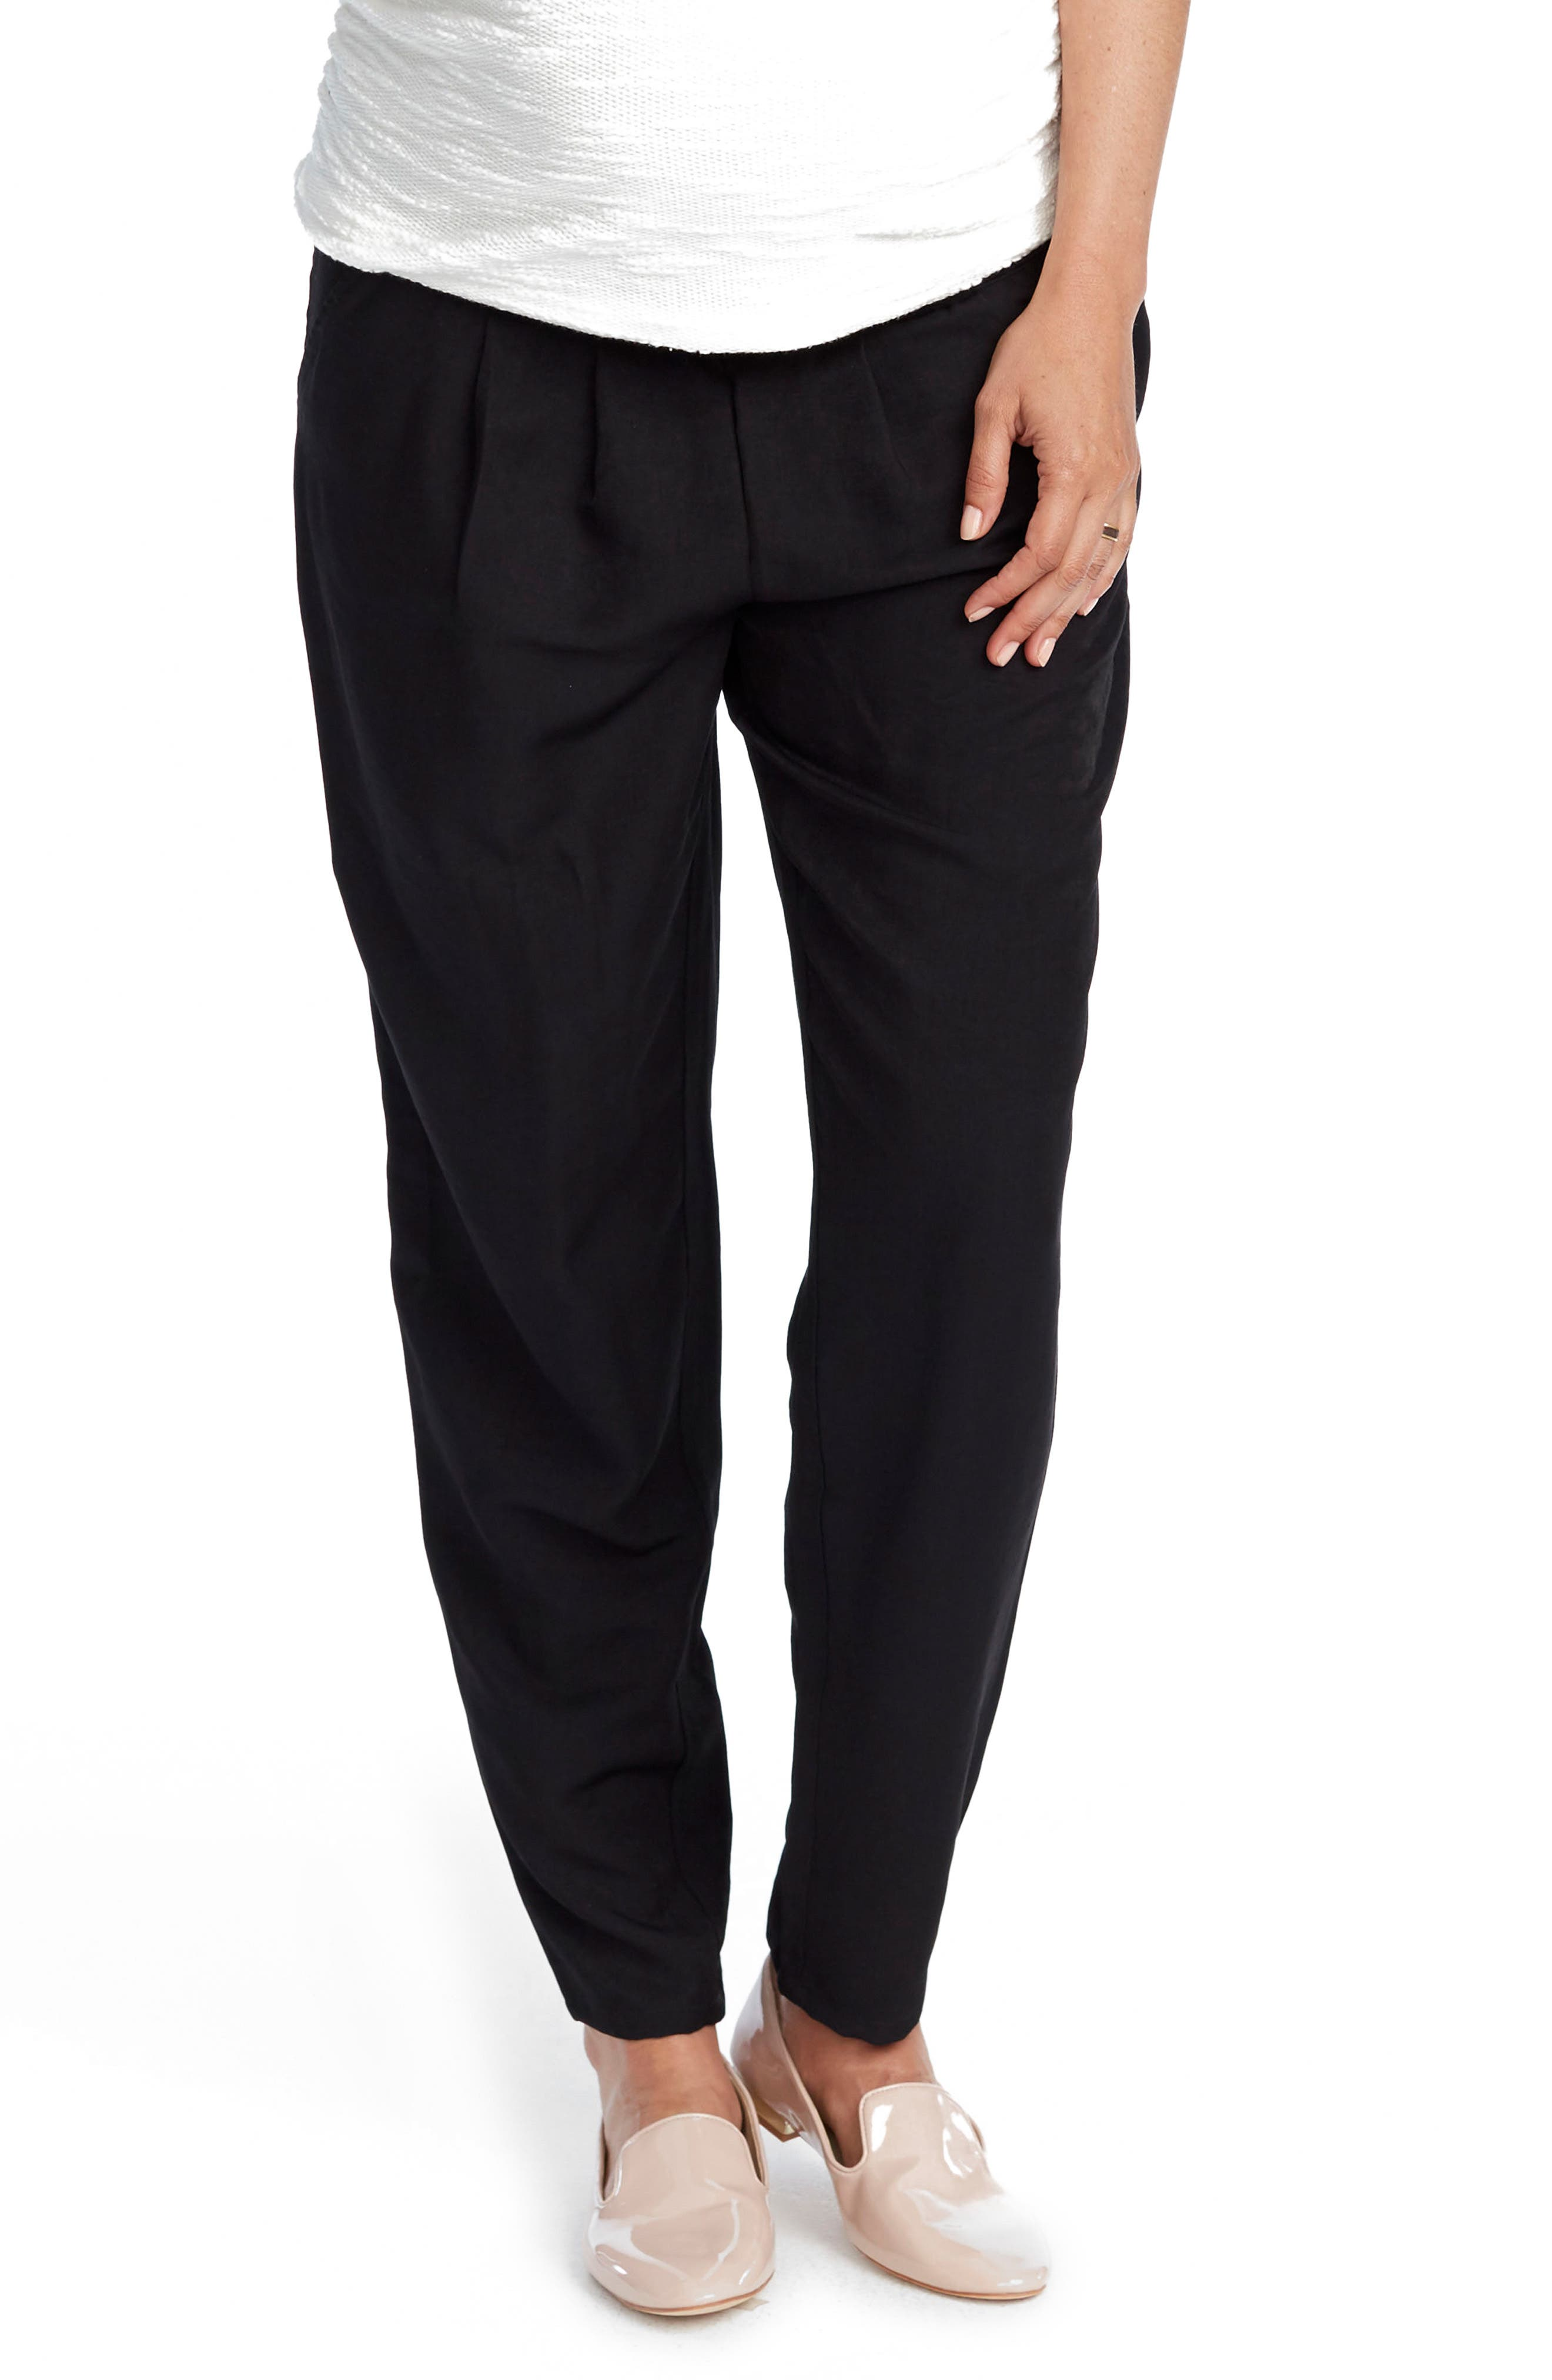 Alternate Image 1 Selected - Rosie Pope Willow Maternity Pants